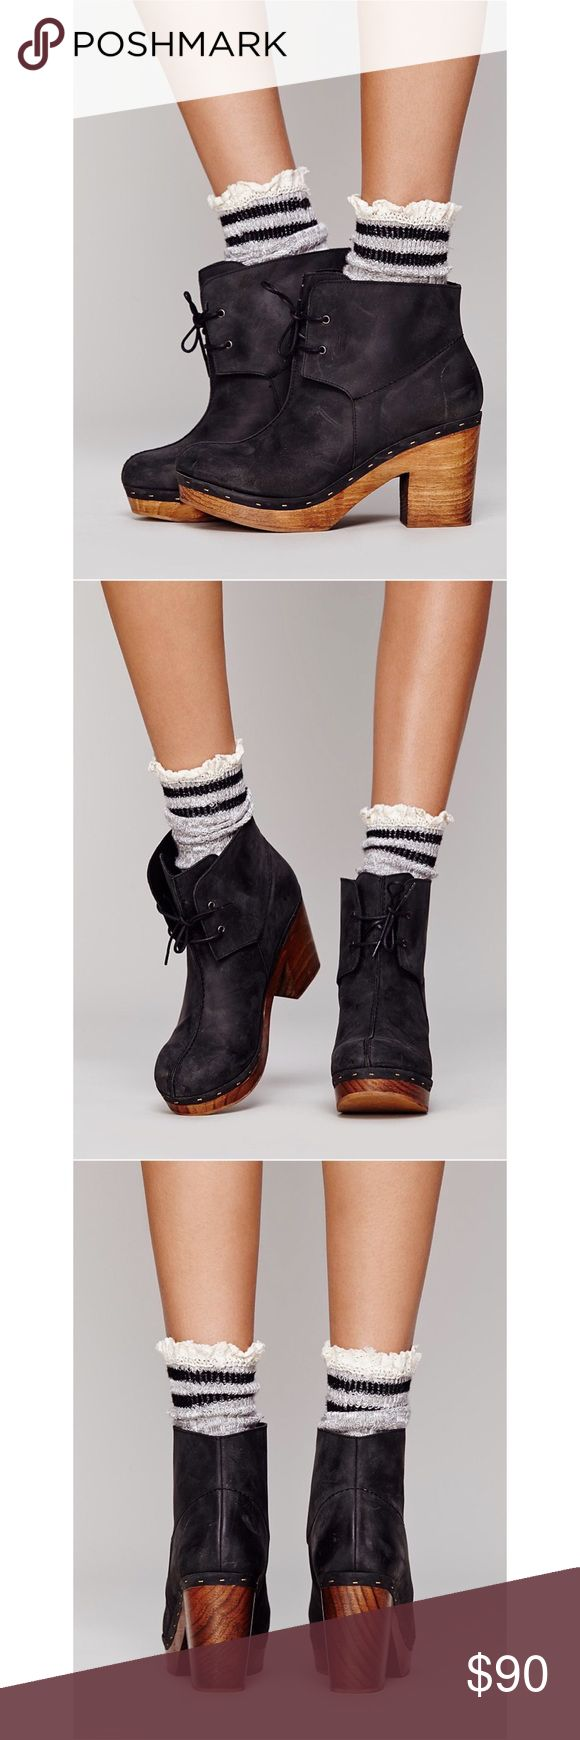 Free People I'm With A Dreamer Clog Boot Free People I'm With A Dreamer Clog Boot There is some slight wear to them but they are still in good wearable condition. Black leather with a natural wood heal. Free People Shoes Lace Up Boots